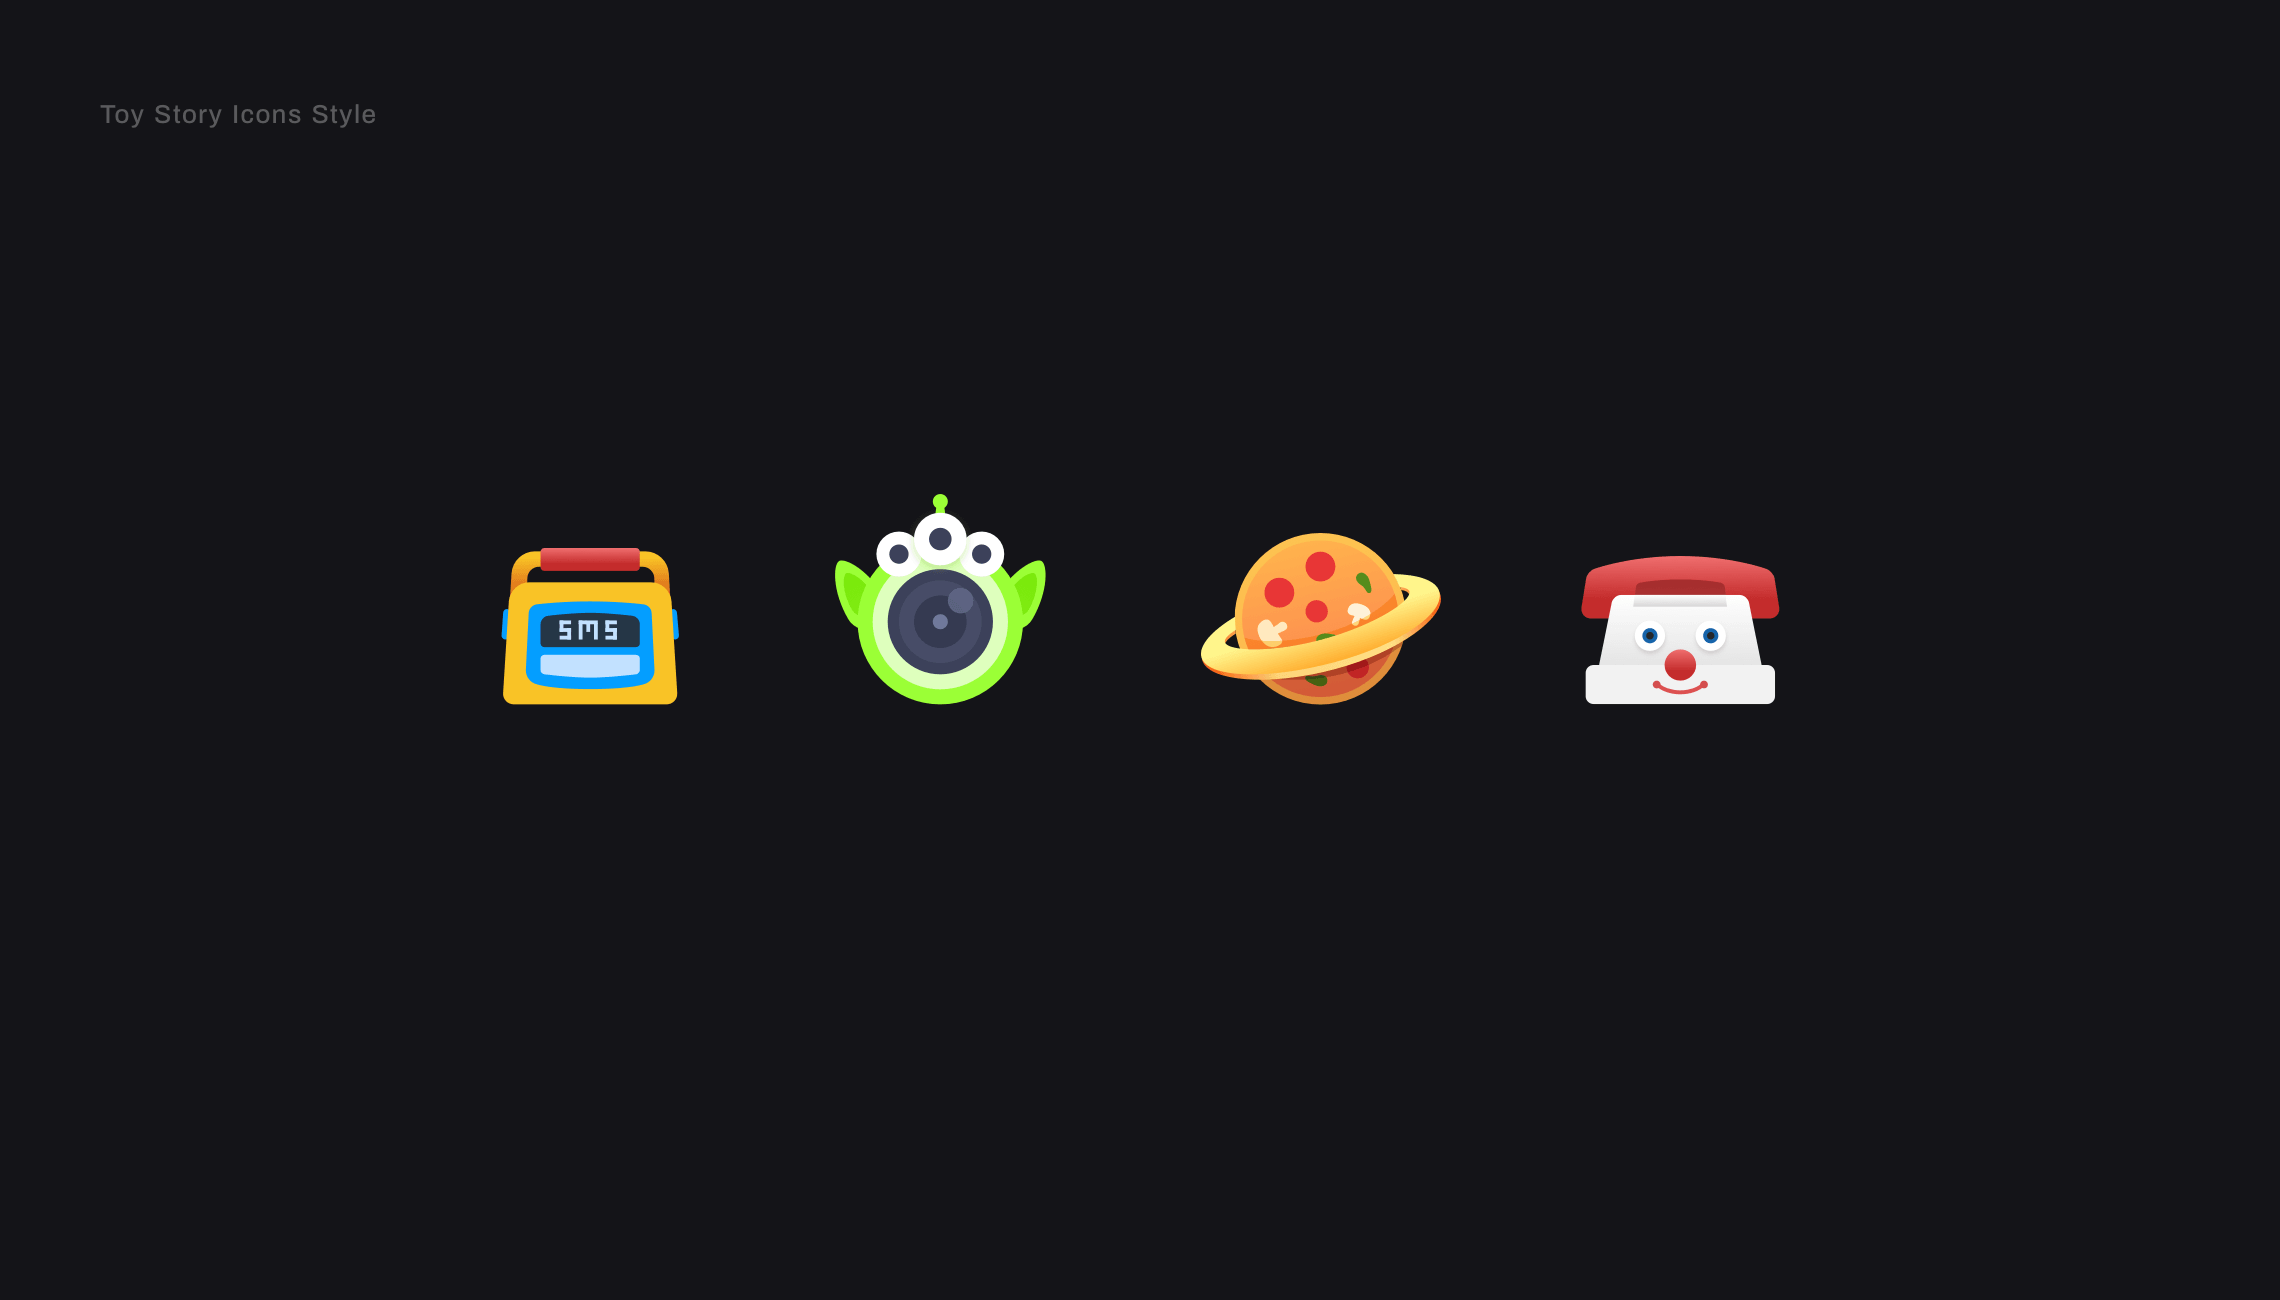 ToyStory_Icons